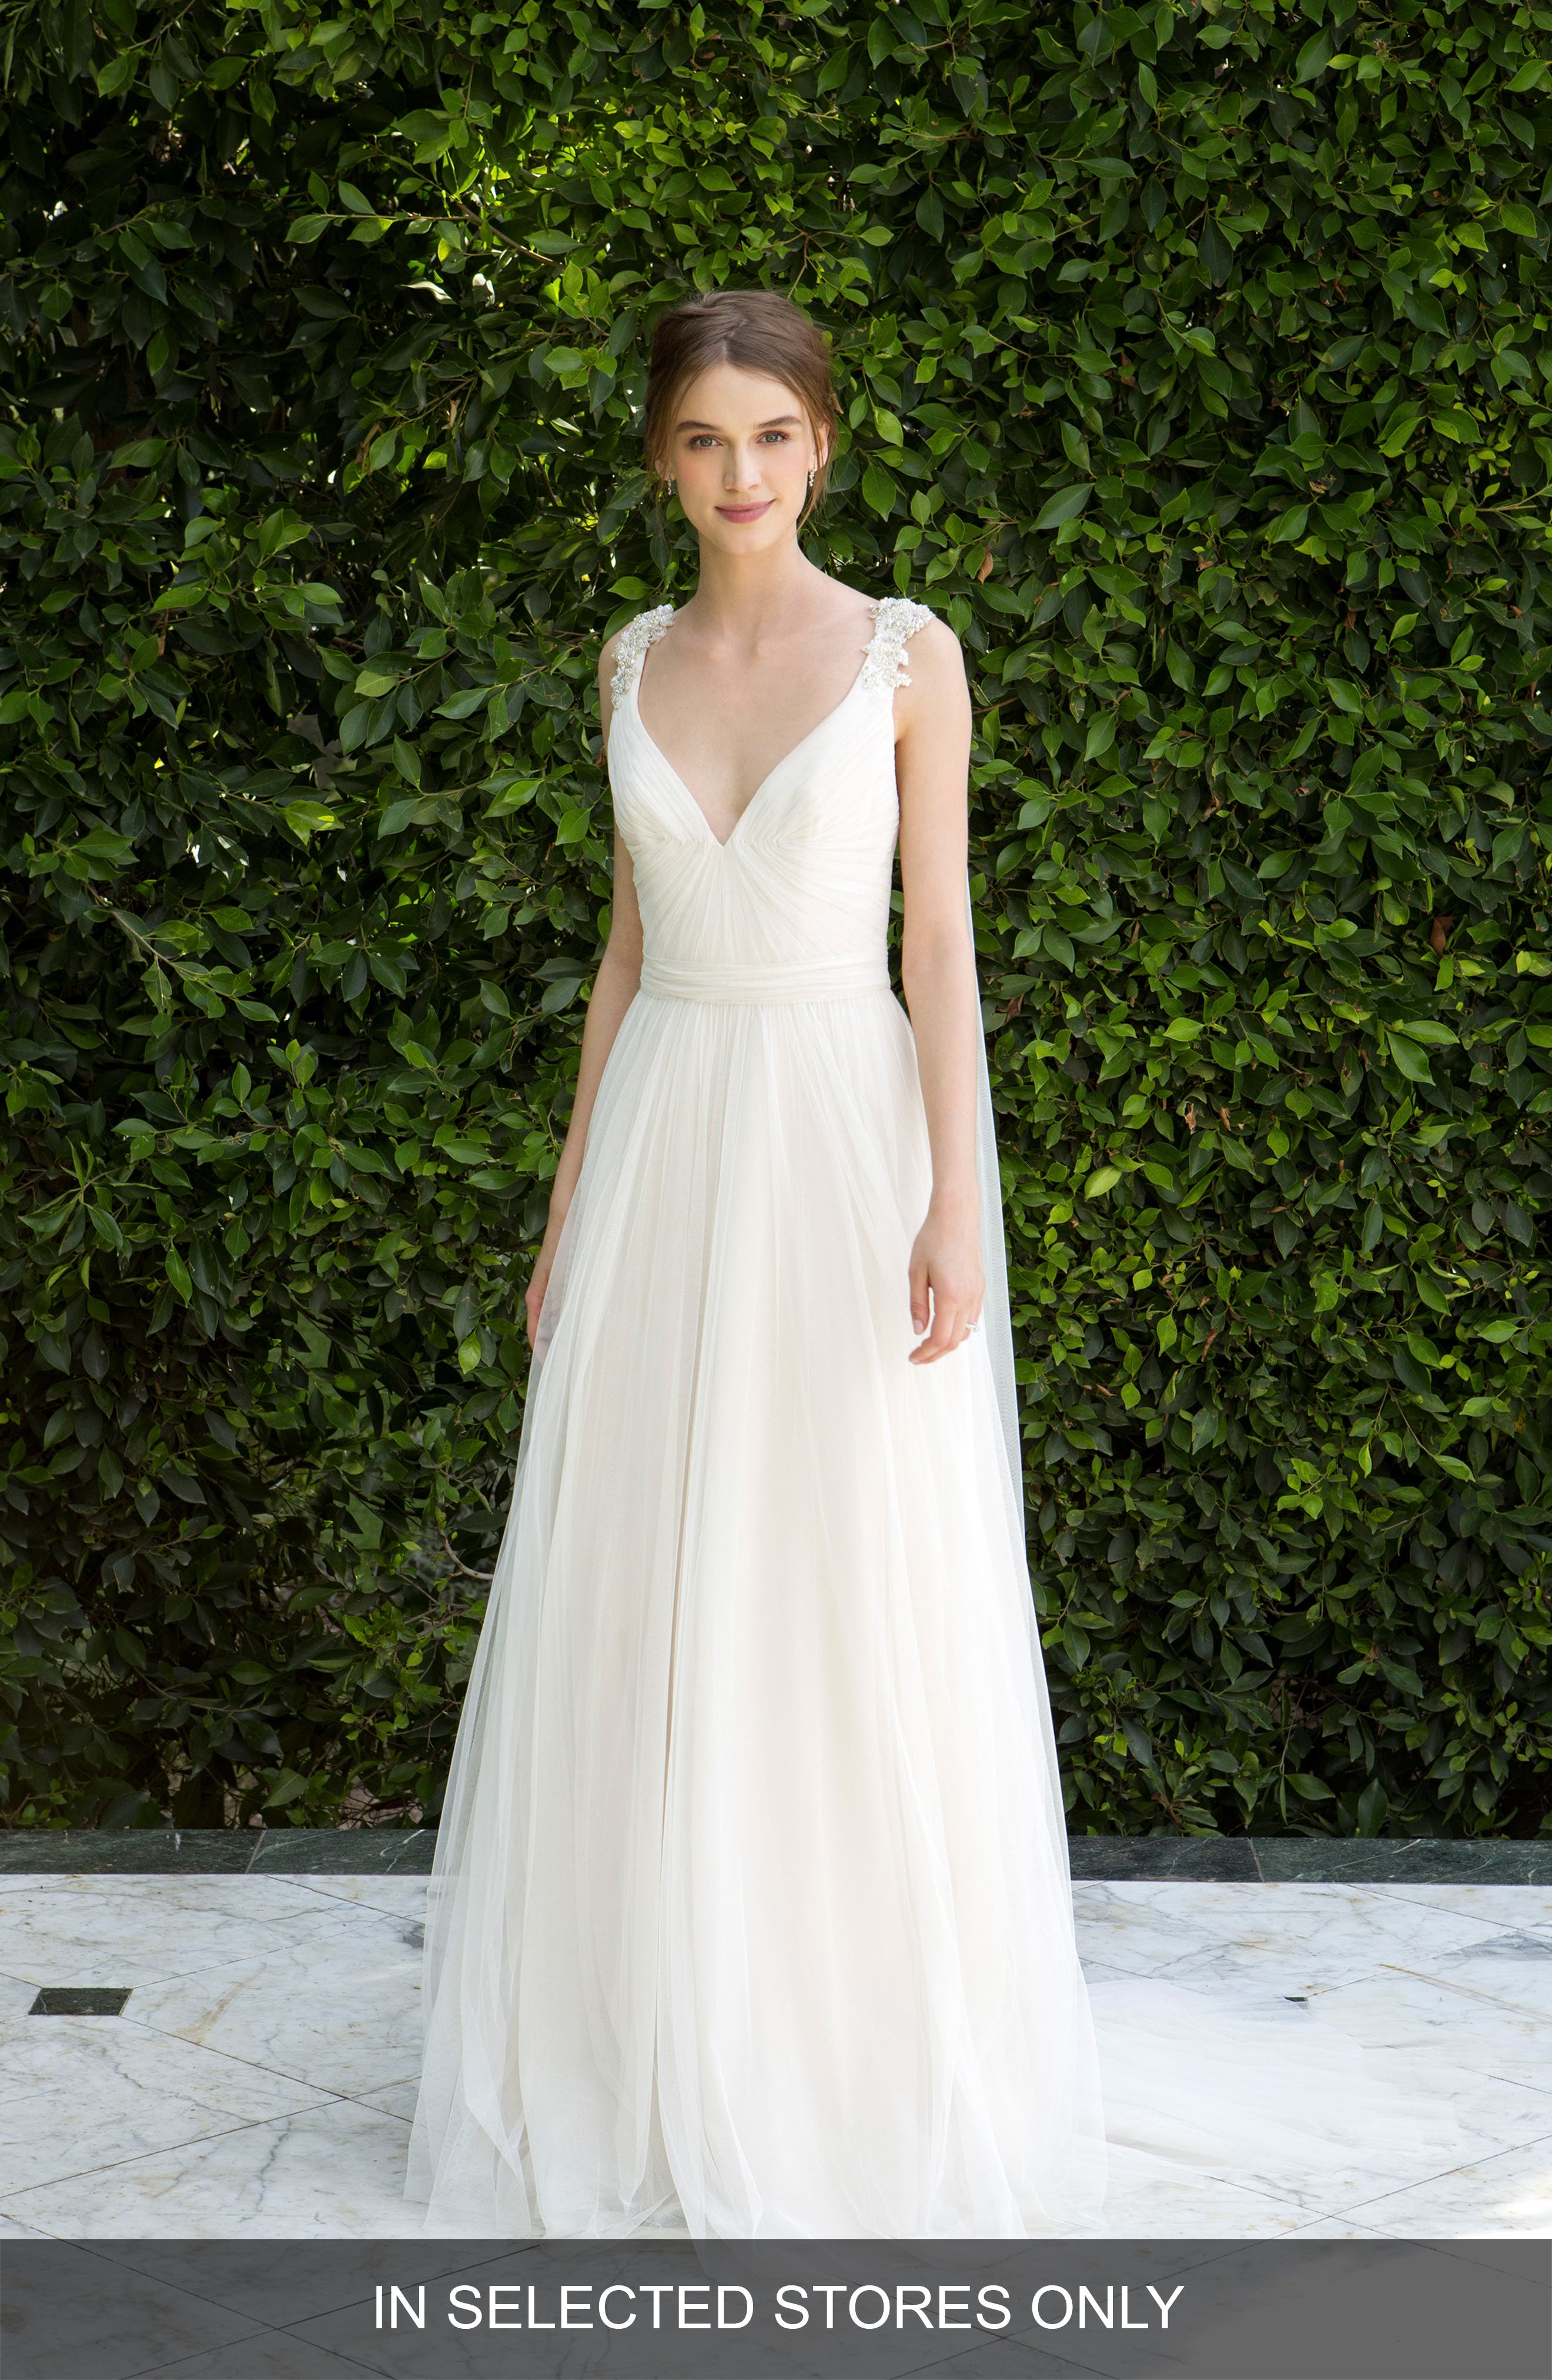 Alternate Image 1 Selected - BLISS Monique Lhuillier Beaded Soft Tulle Dress with Tails